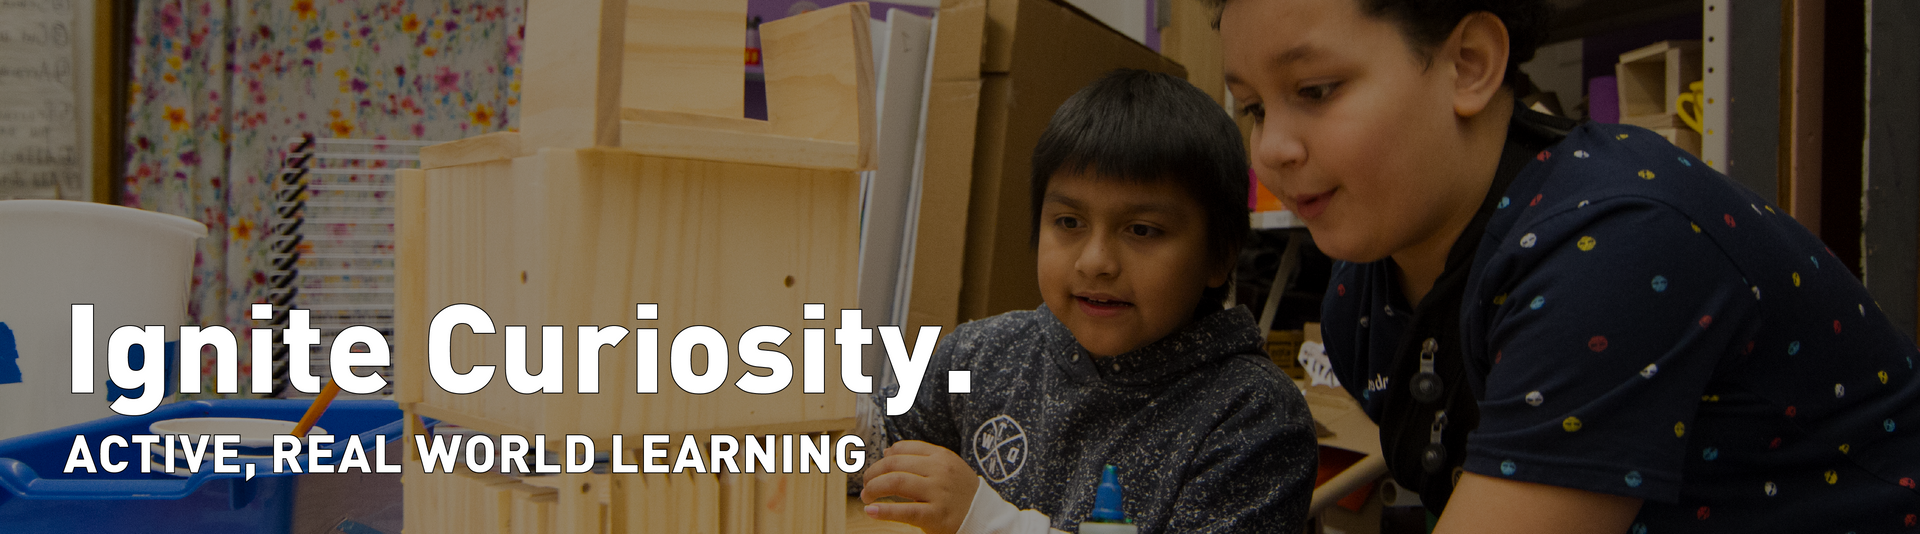 Ignite curiosity: active, real world learning